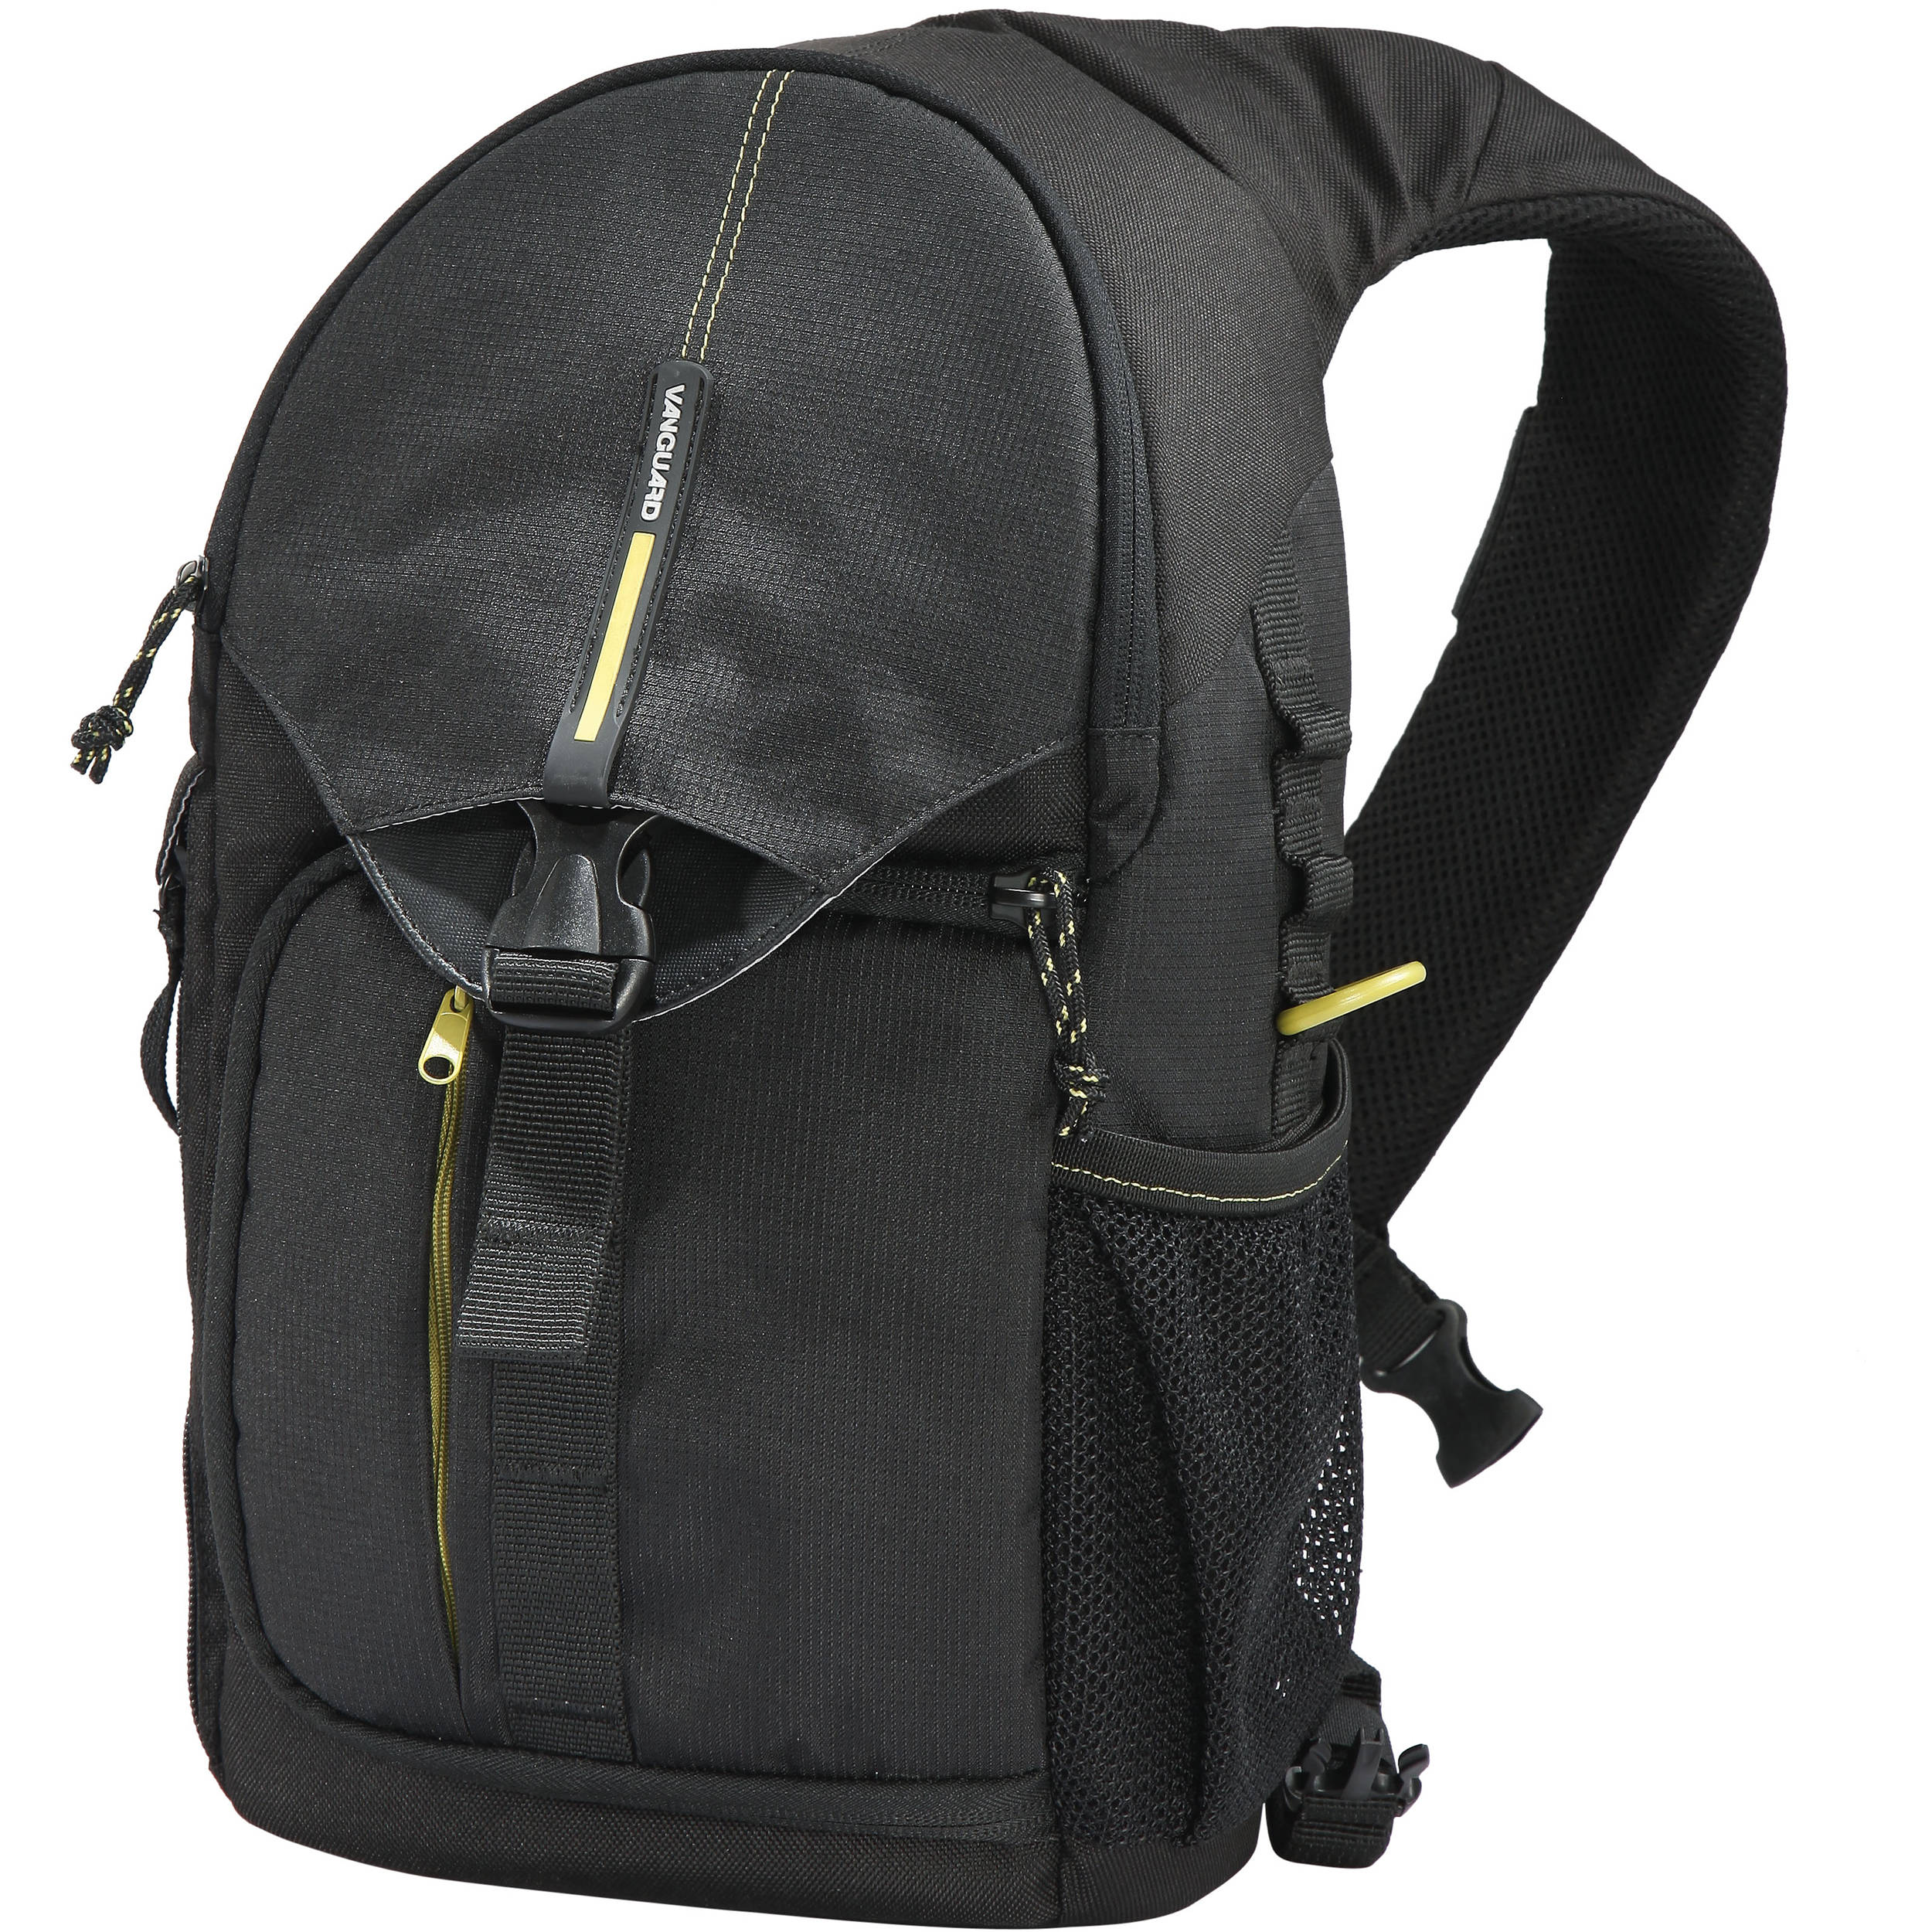 Vanguard BIIN 47 Sling Bag (Black)